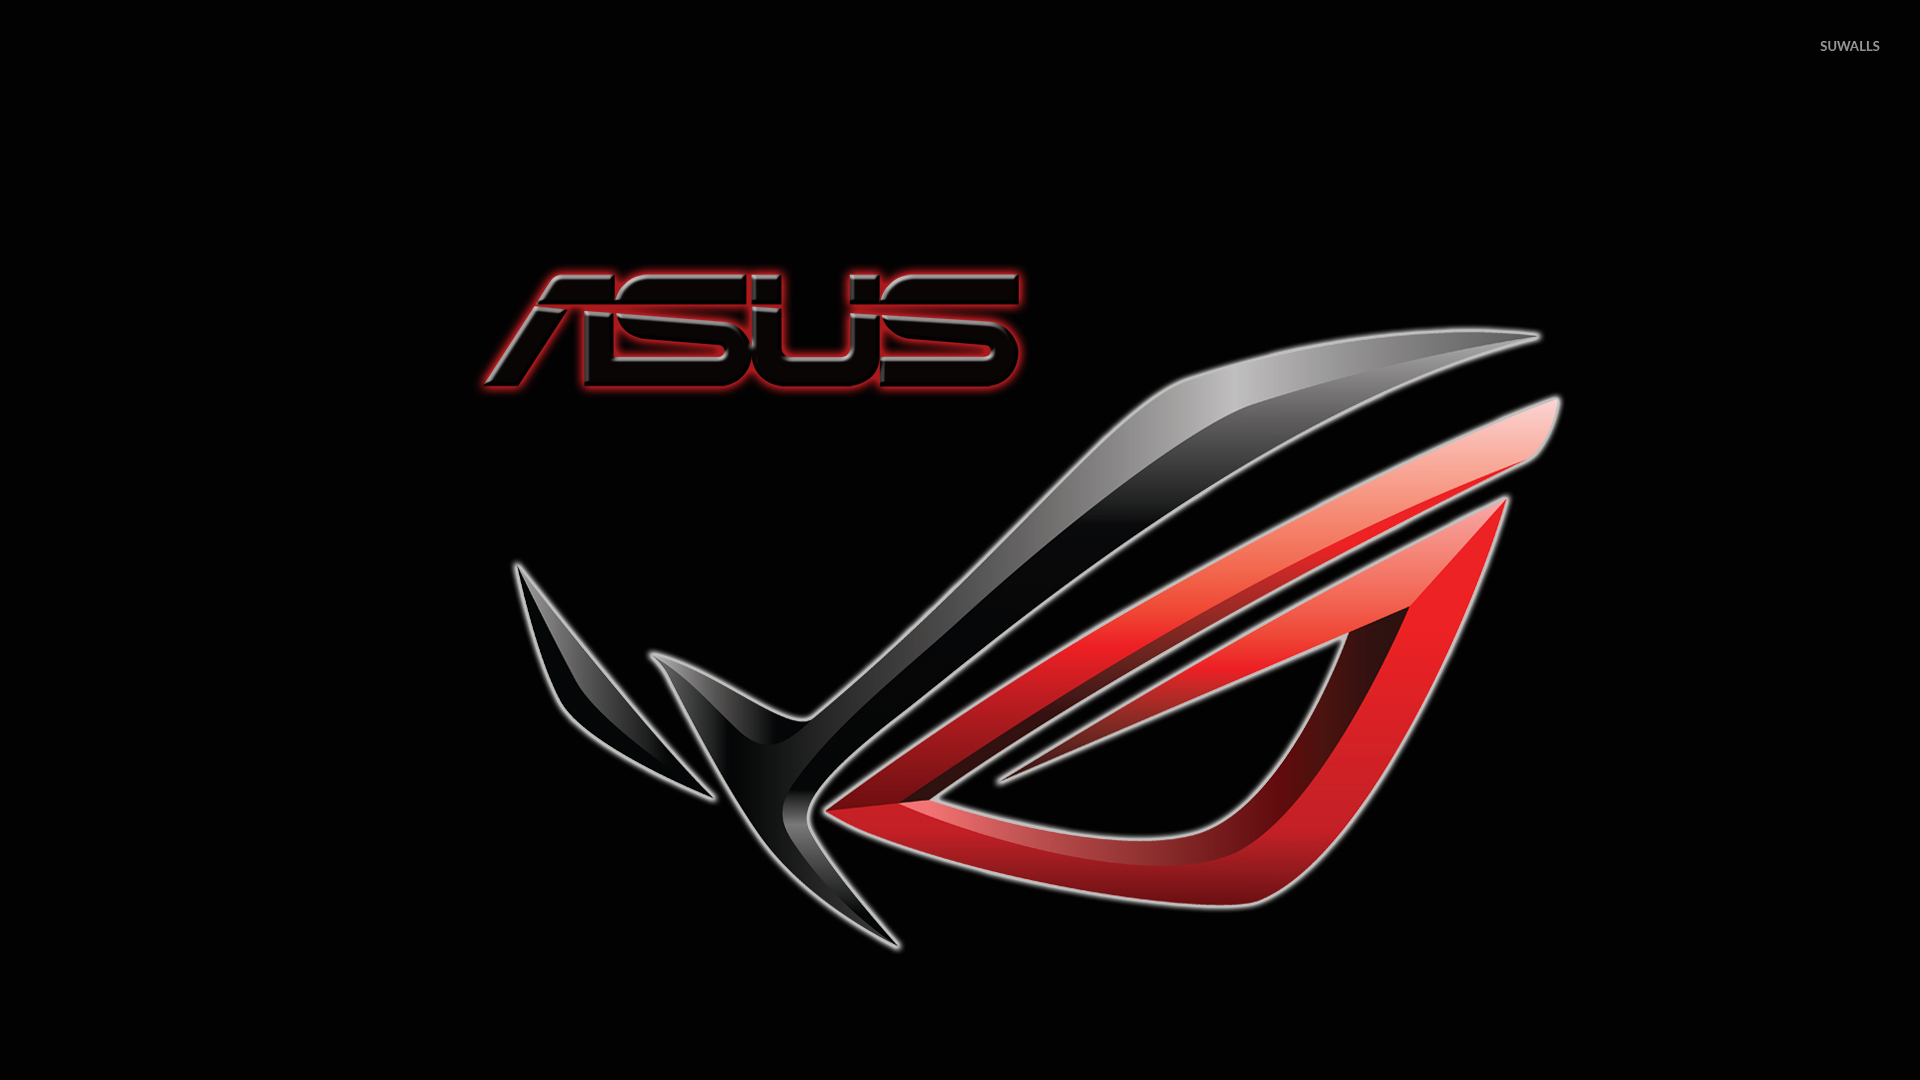 Asus Wallpaper 1366x768 Pictures 1366x768